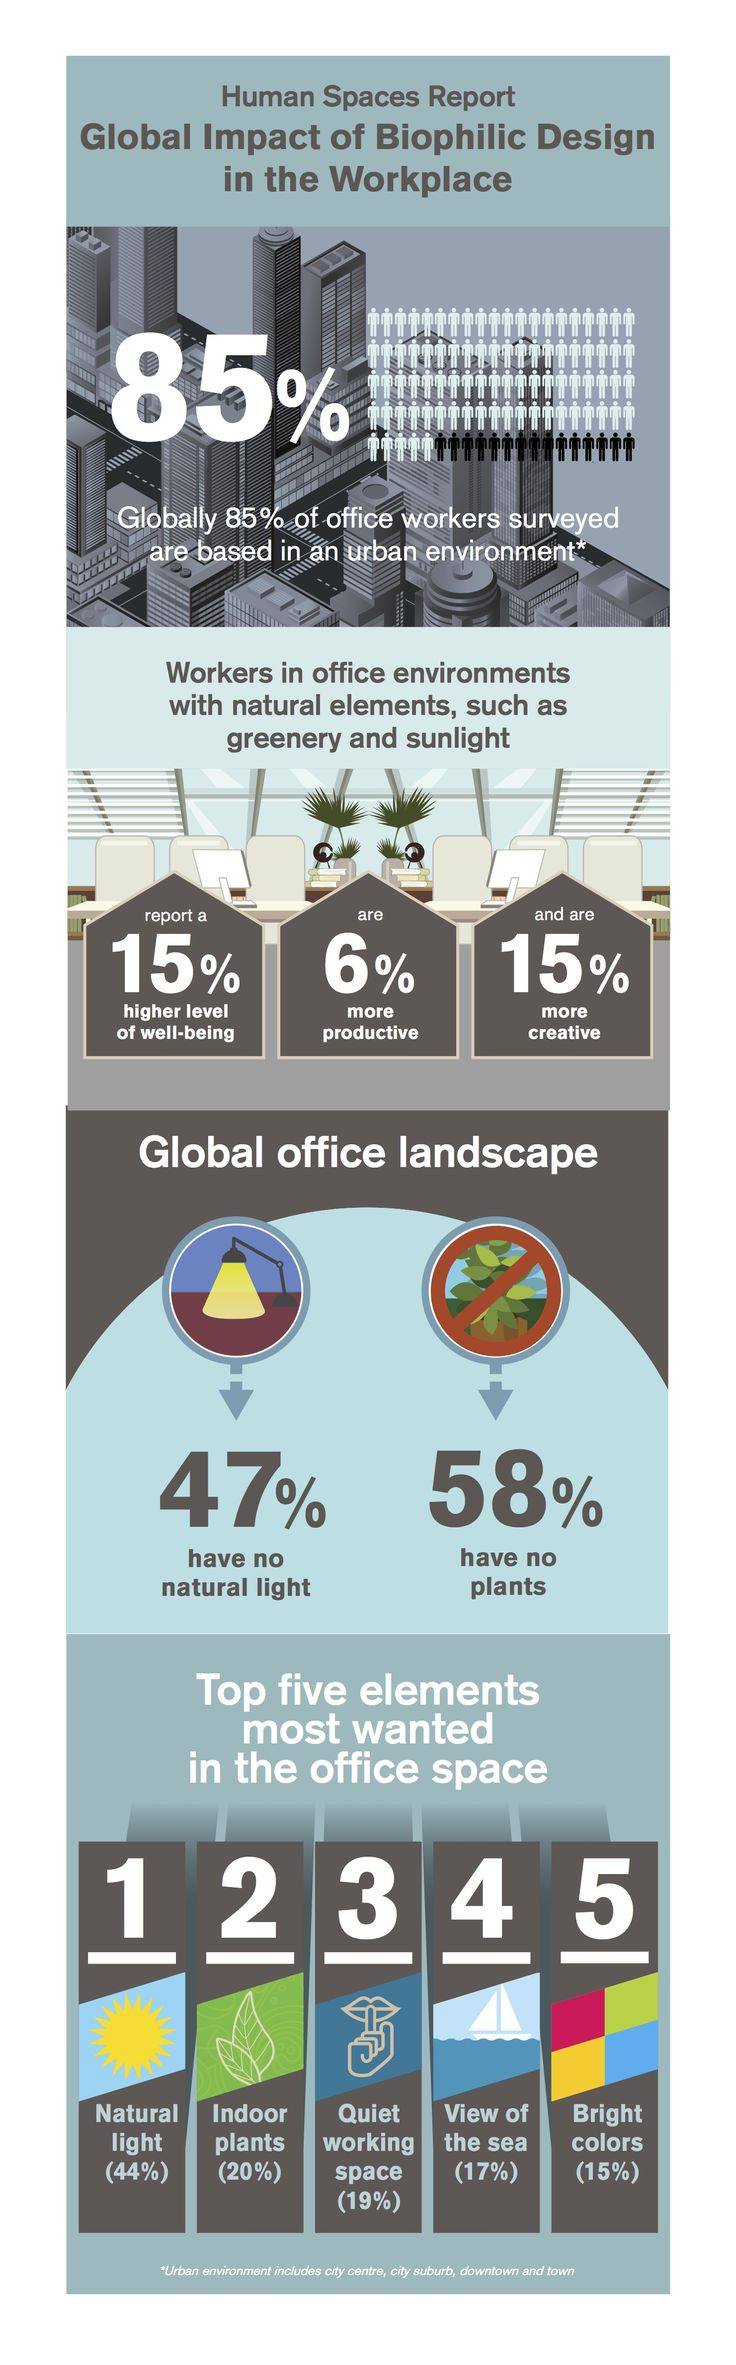 Global Impact of Biophilic Design in the Workplace